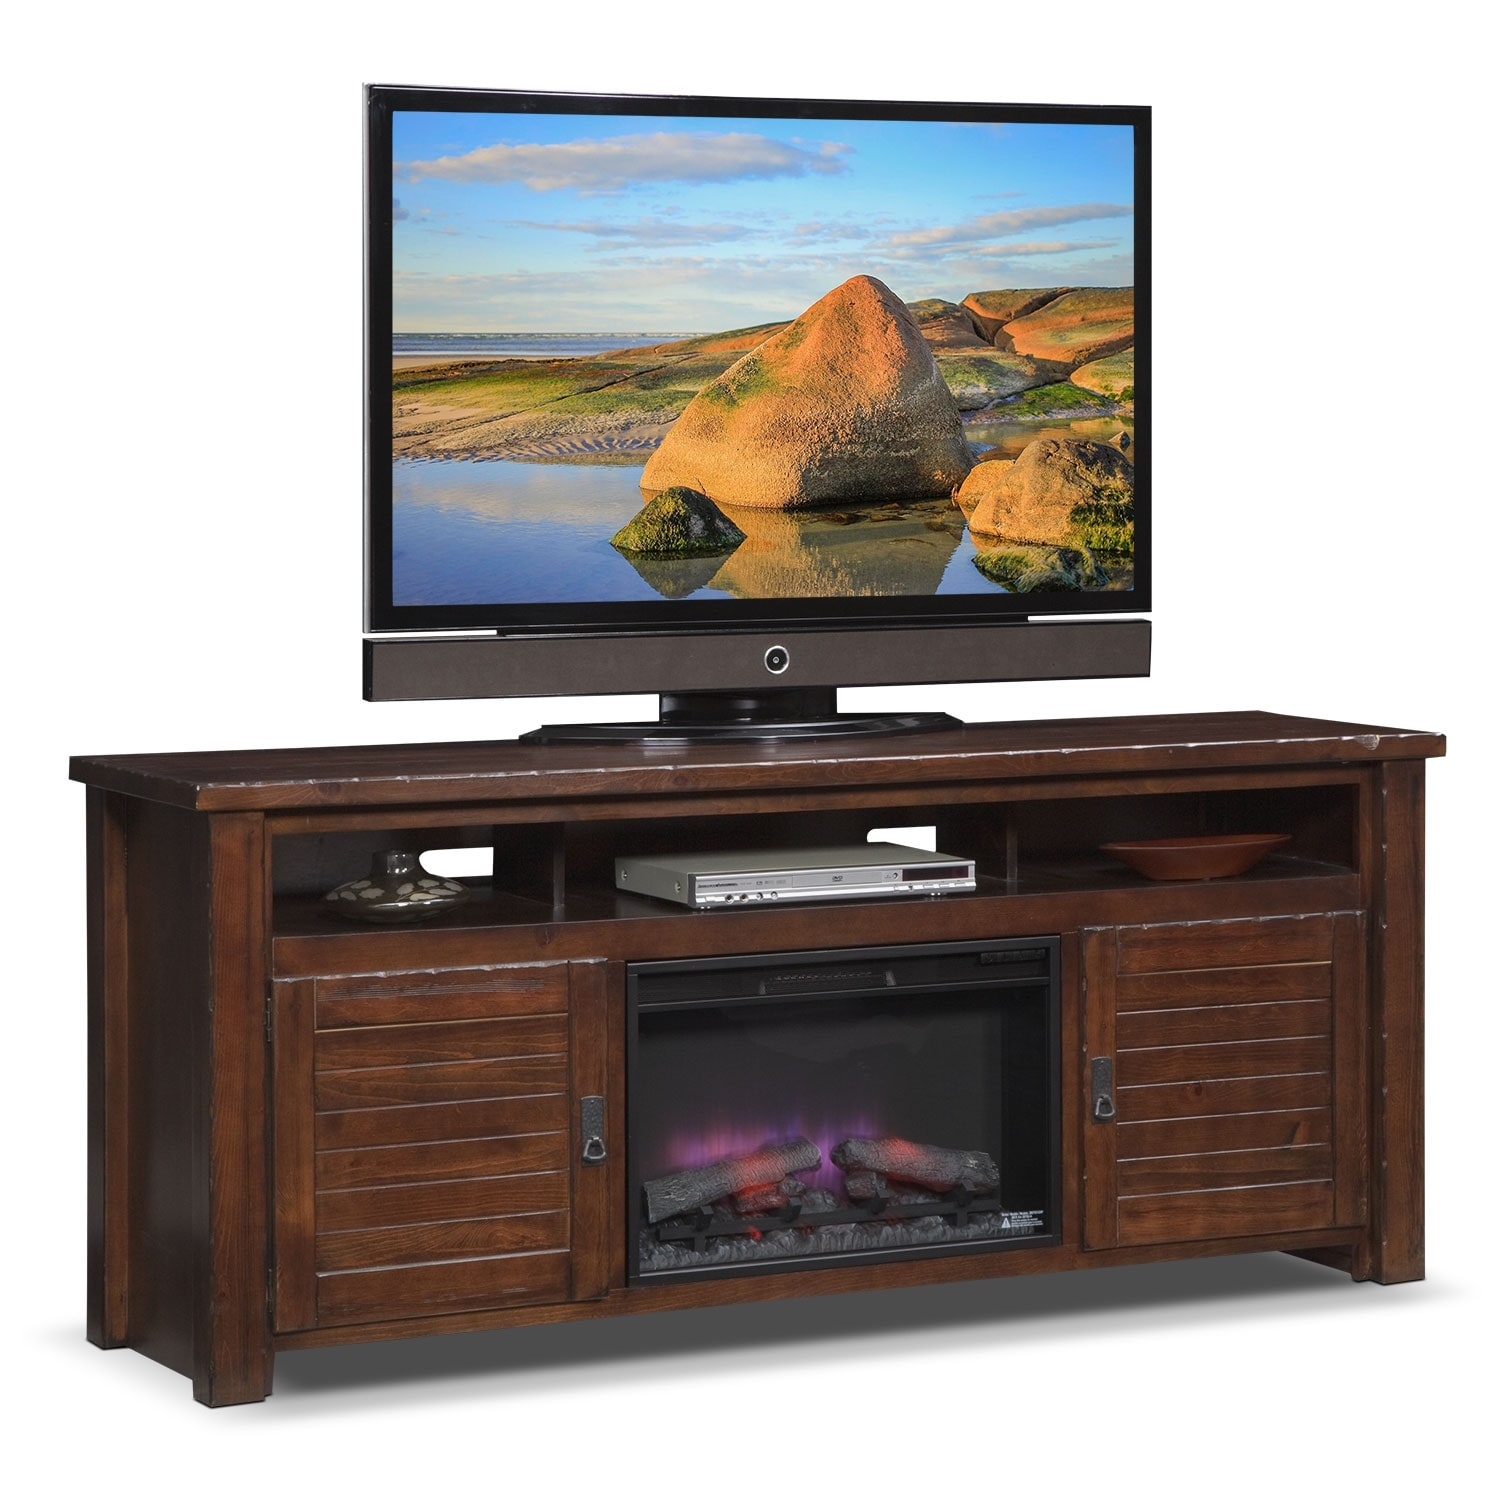 Harrington entertainment wall units 74 fireplace tv stand for Tv furniture